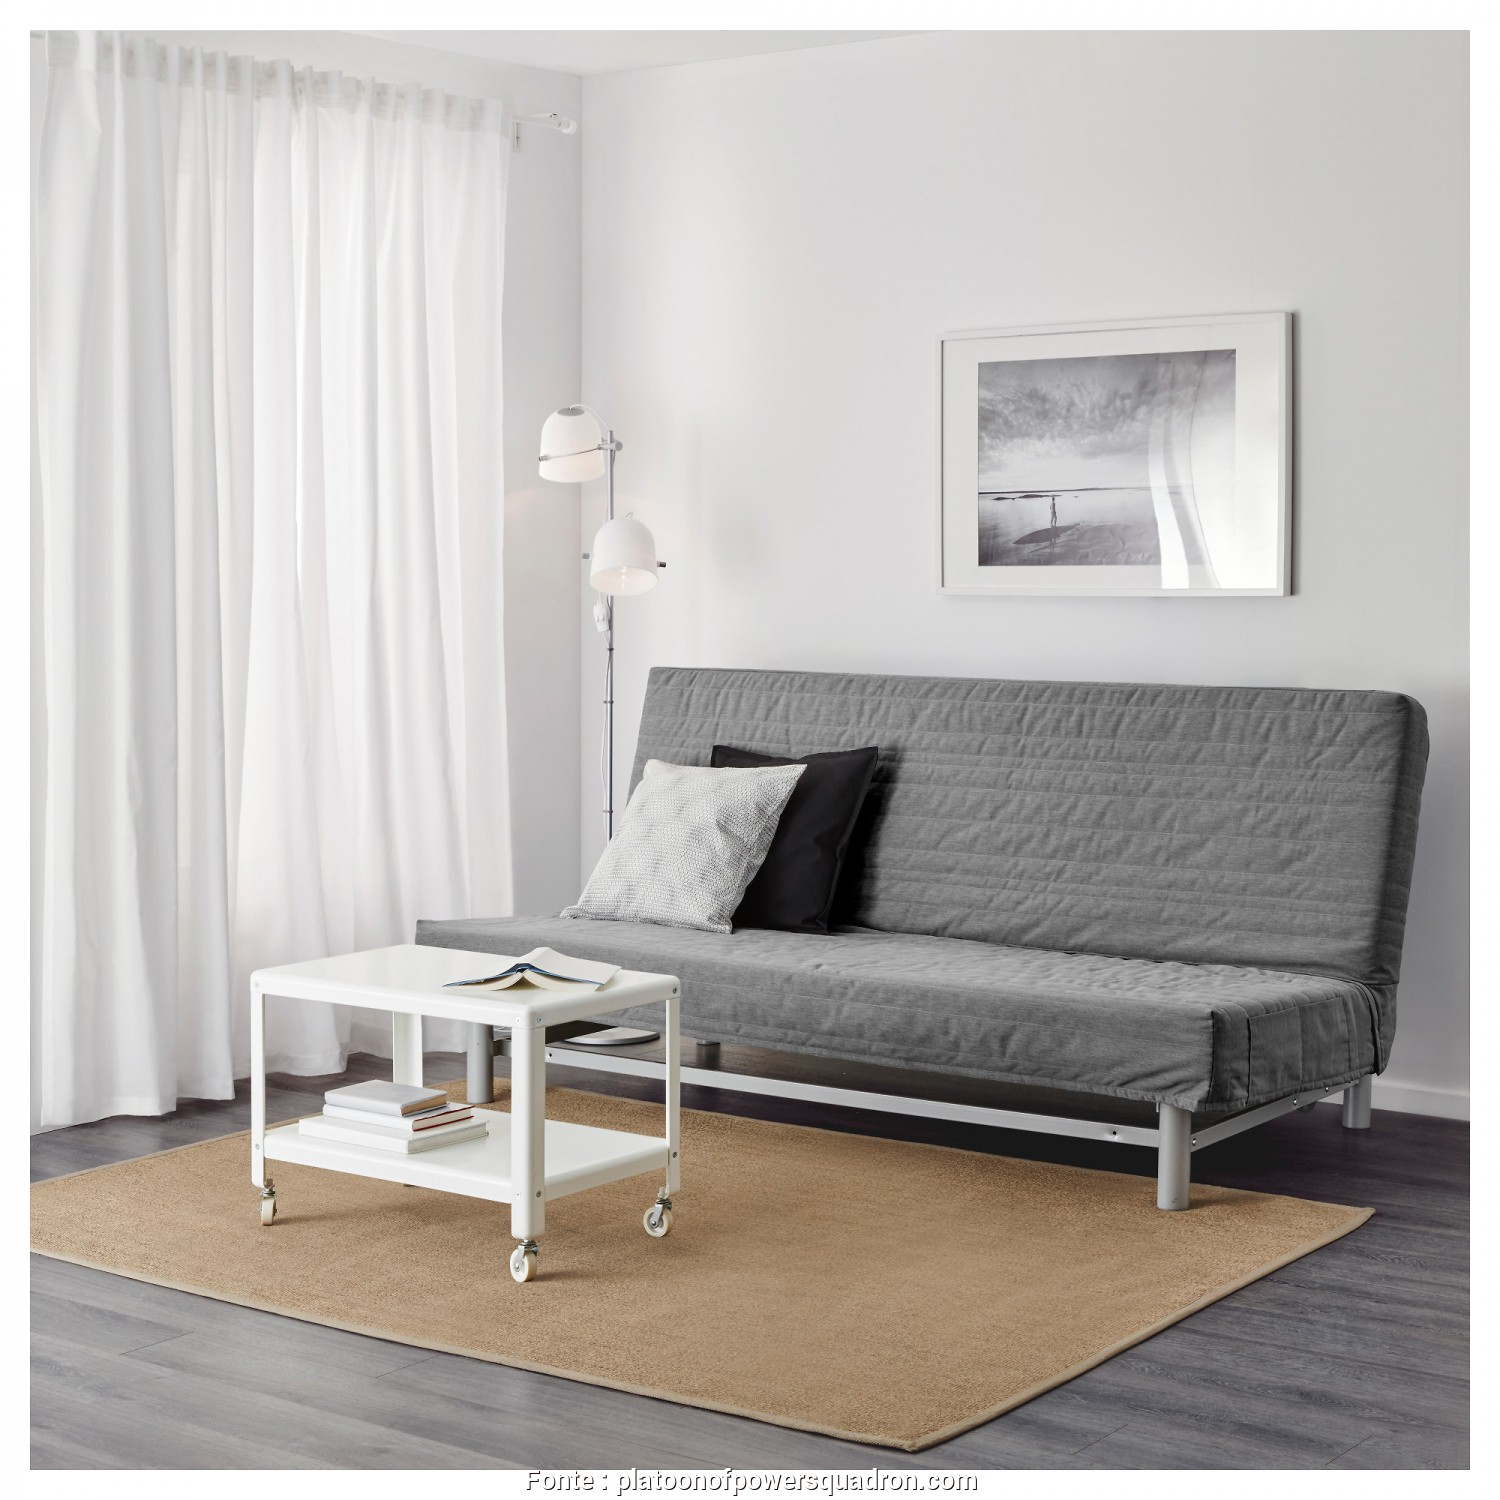 Ikea Beddinge Lovas Dimensions, Modesto Replacement Couch Covers, Ikea Stockholm Sofa Cover, Beddinge Cover